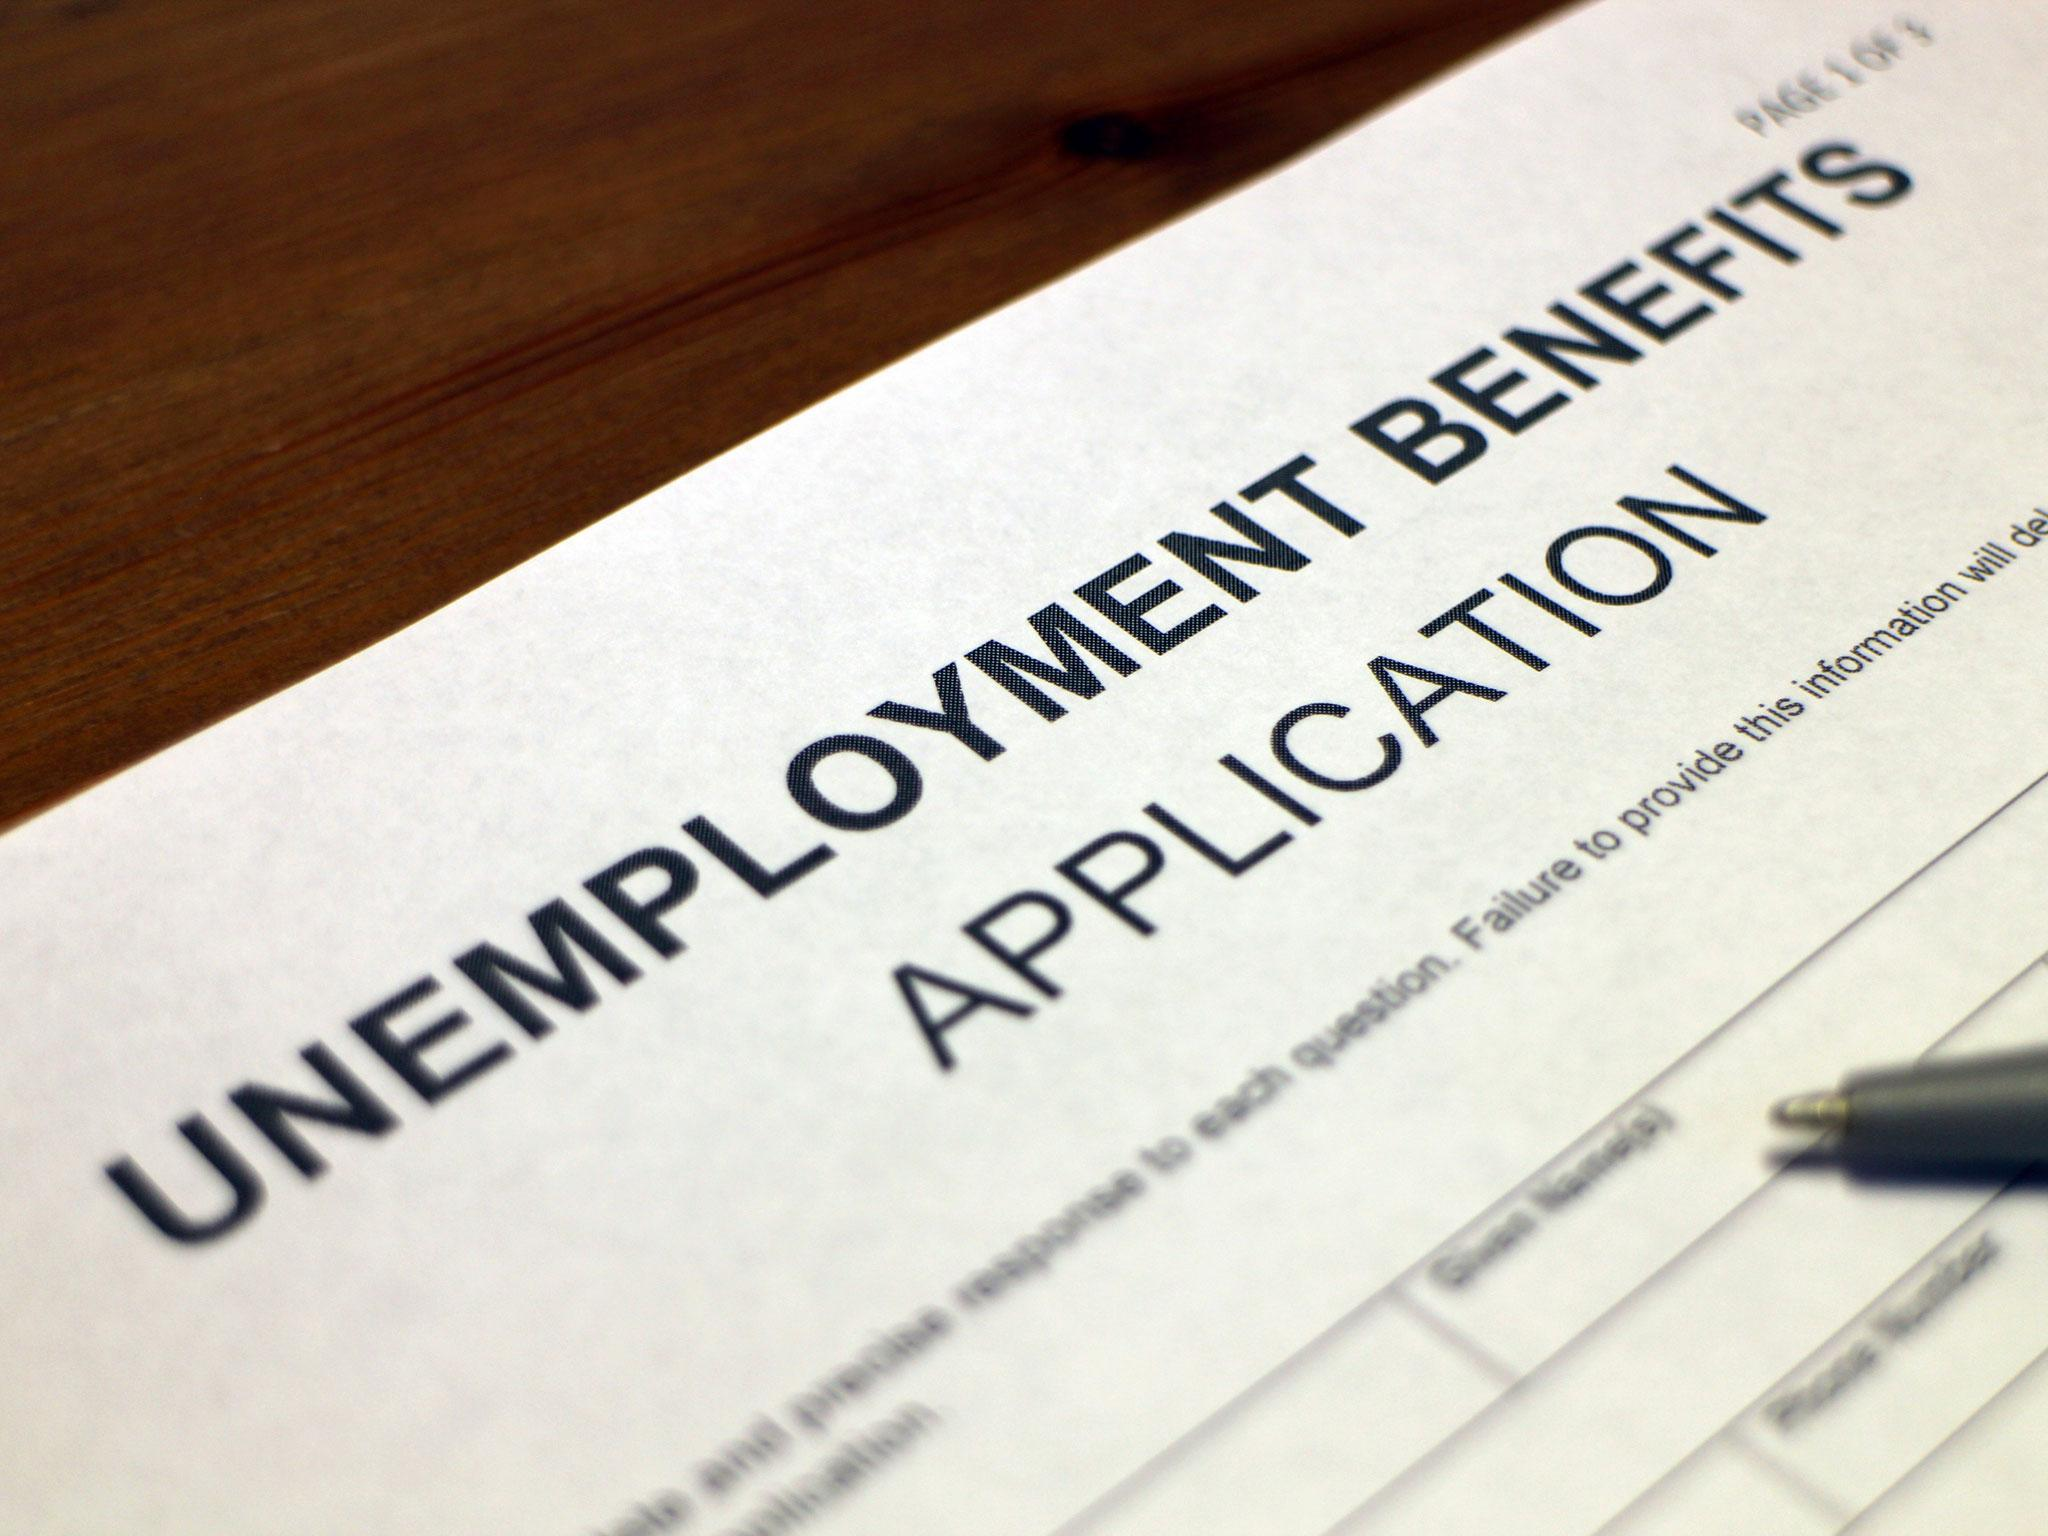 unemployment research If you want to know how to get a well-written example of a research paper on unemployment, be sure to read the following article that can help you out.